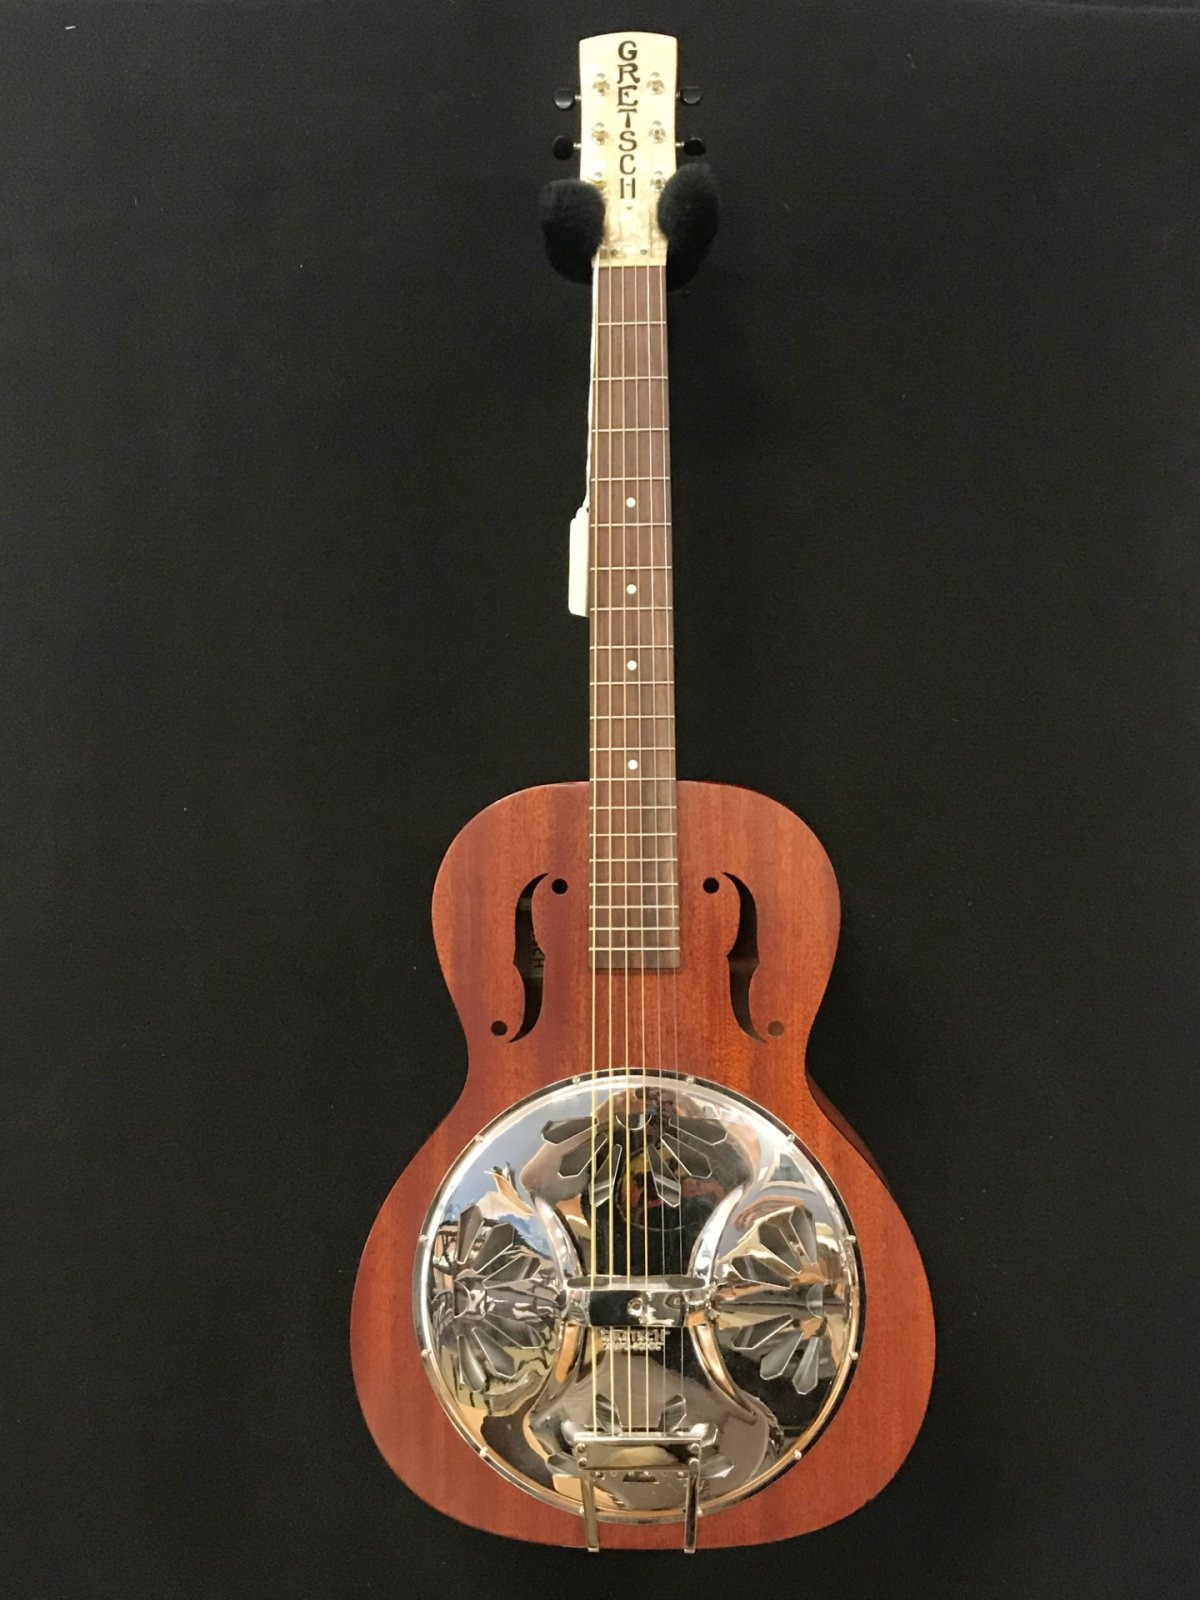 USED Gretsch G9200 Boxcar Round-Neck Resonator Guitar